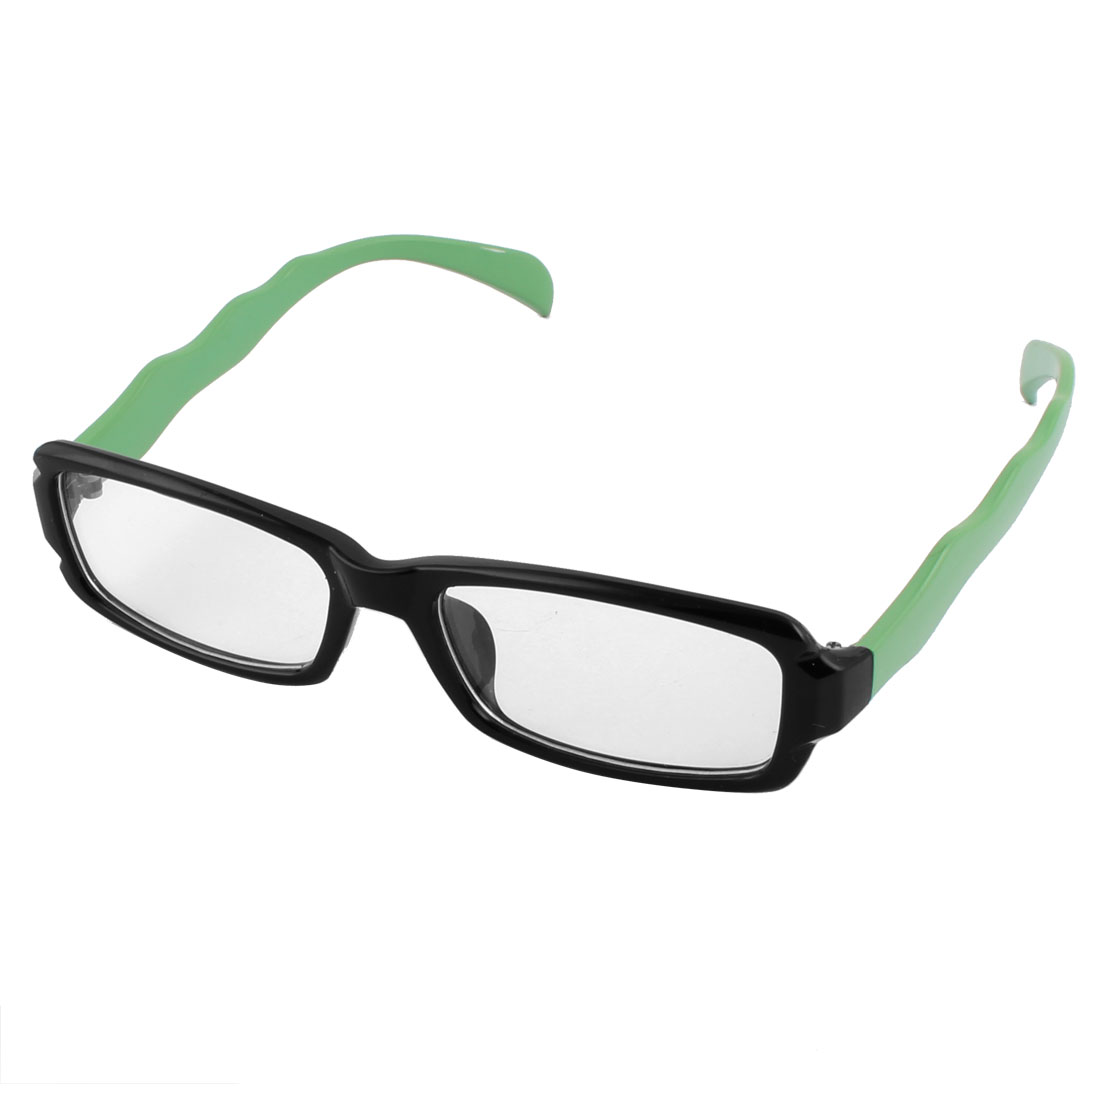 Office Reading Woman Plastic Rectangle Shaped Full Rim Single Bridge Plain Glasses